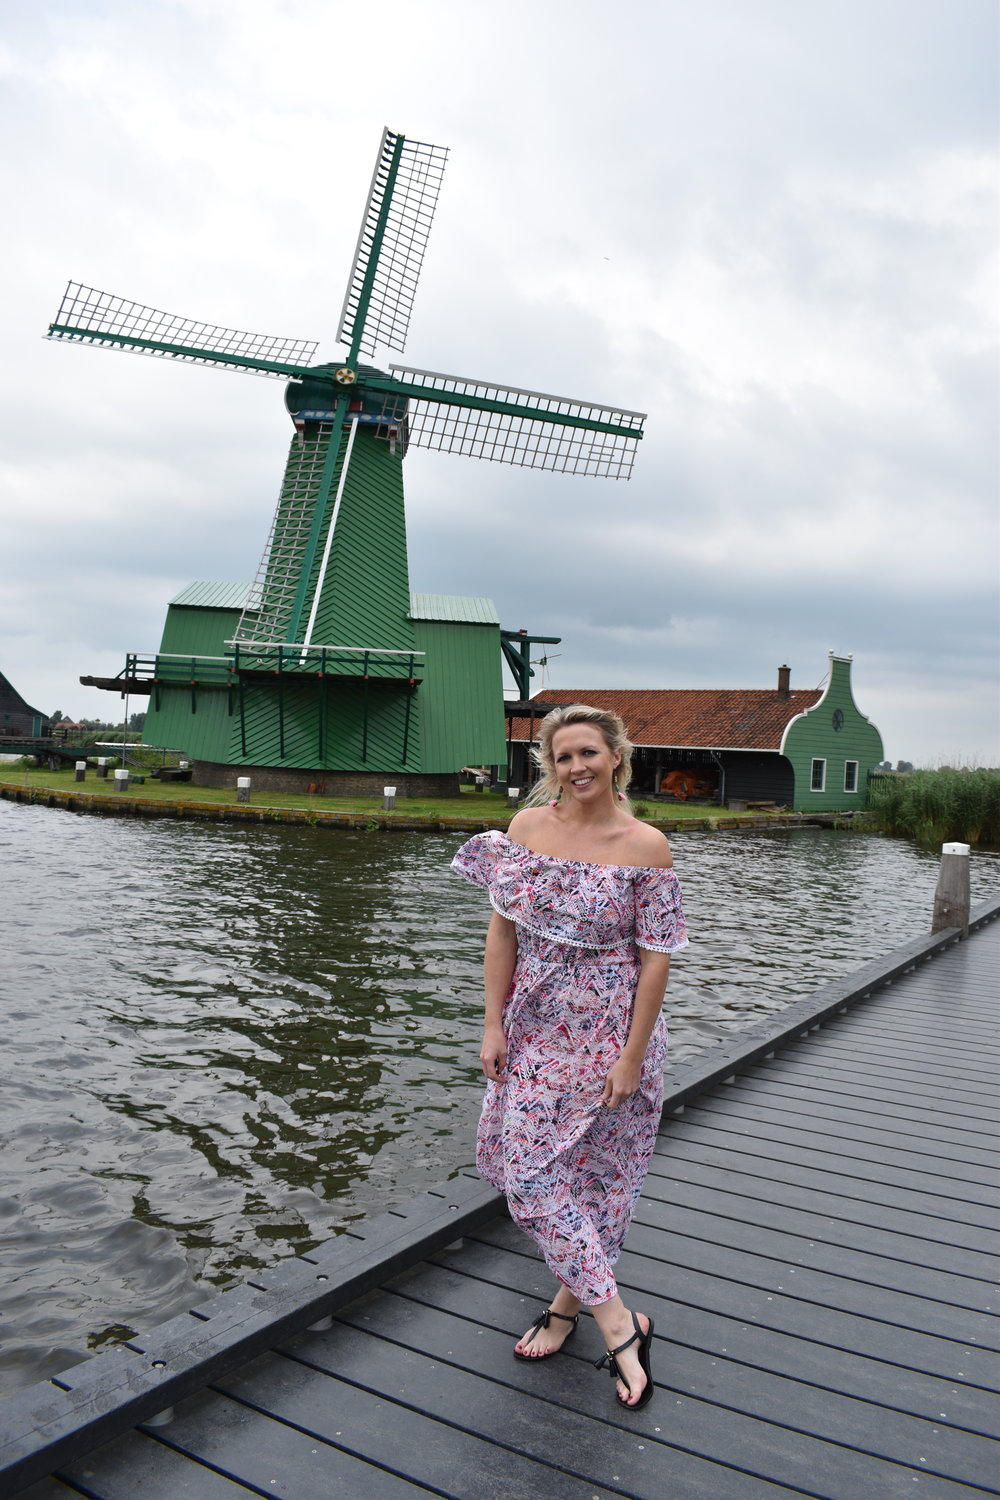 TURNS OUT IT'S PRETTY WINDY HERE - GO FIGURE. THESE AMAZING CONSTRUCTIONS ARE HUNDREDS OF YEARS OLD AND STILL USED TODAY TO MAKE ANYTHING FROM MUSTARD TO COCOA POWDER. WINDMILL TOUR, ZAANSE SCHANS.